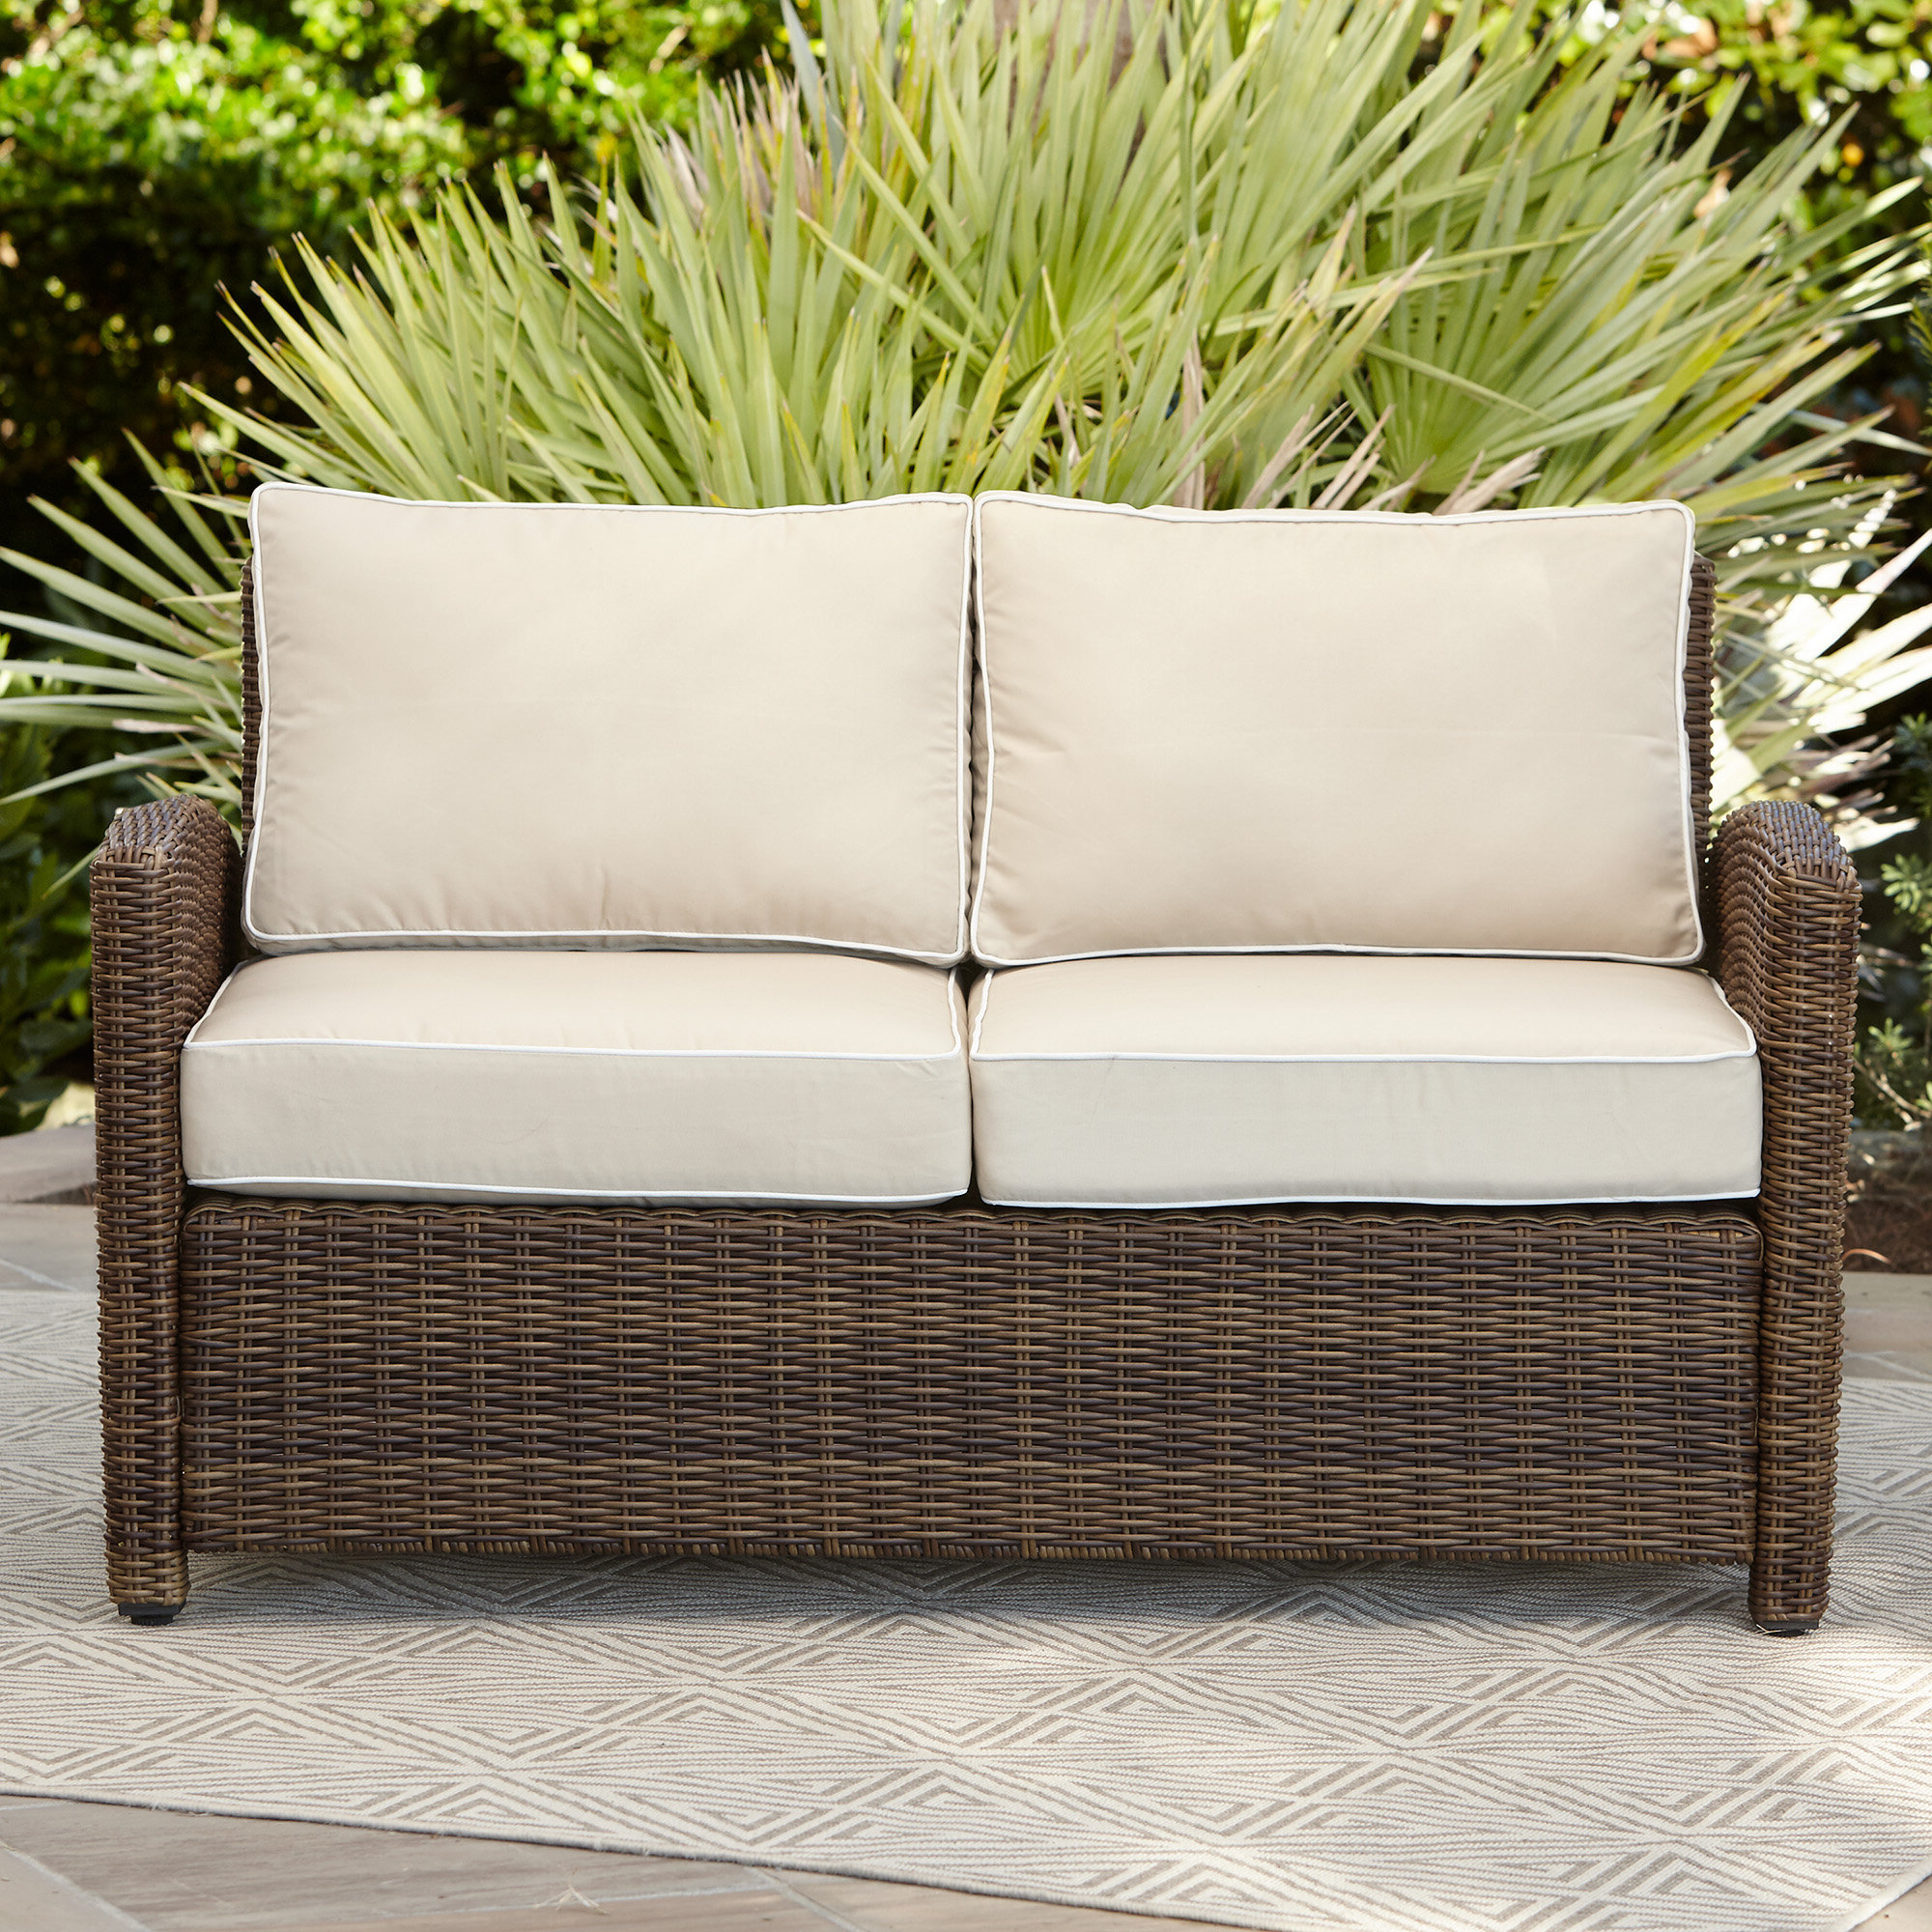 Most Recently Released Lawson Wicker Loveseat With Cushions In Lawson Wicker Loveseats With Cushions (View 4 of 25)